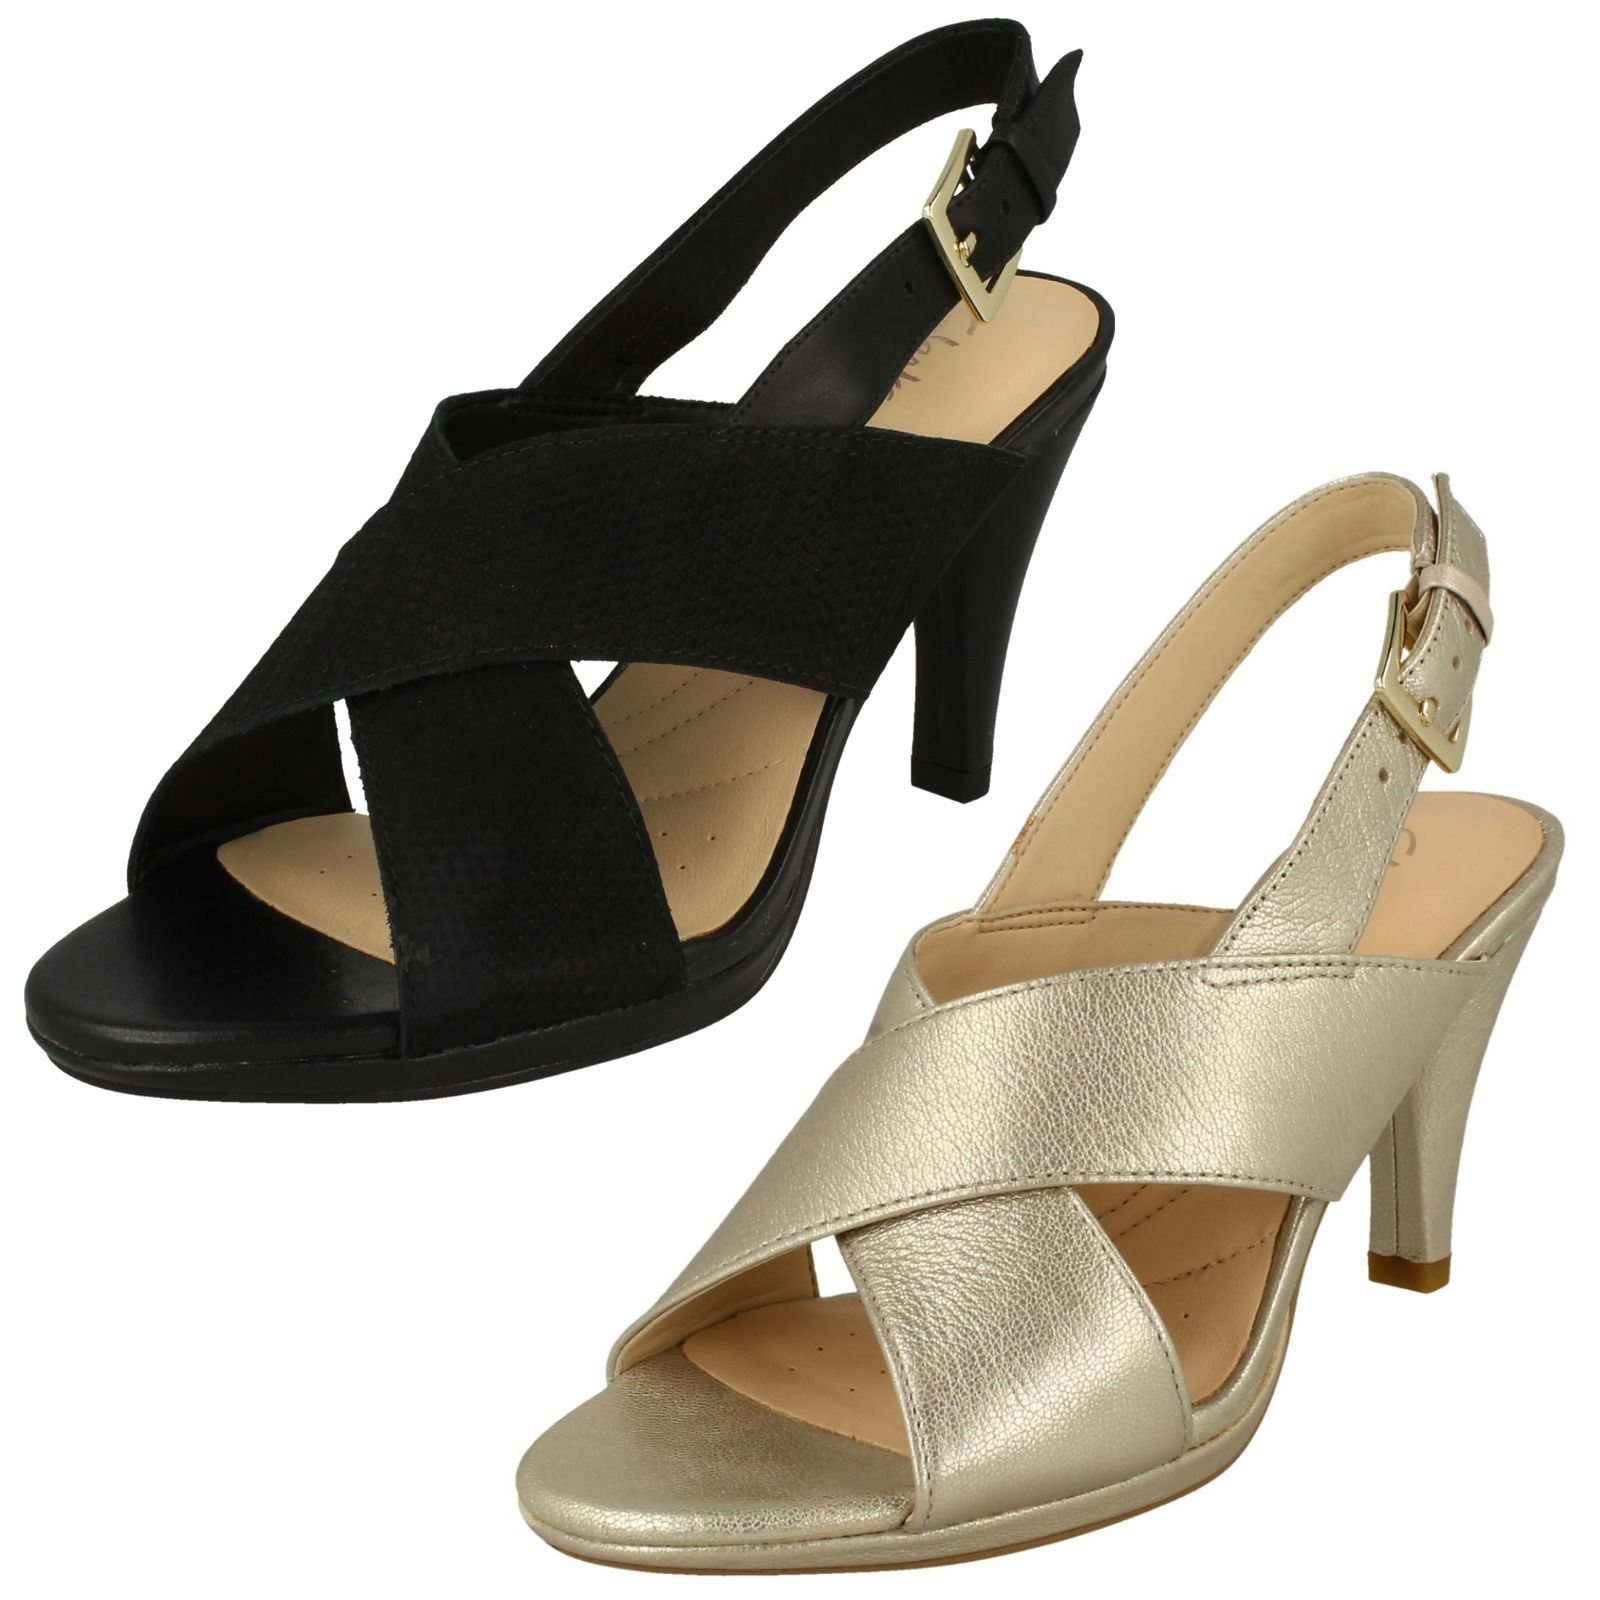 Details about Womens Clarks Heeled Slingback Sandals 'Dalia Lotus'